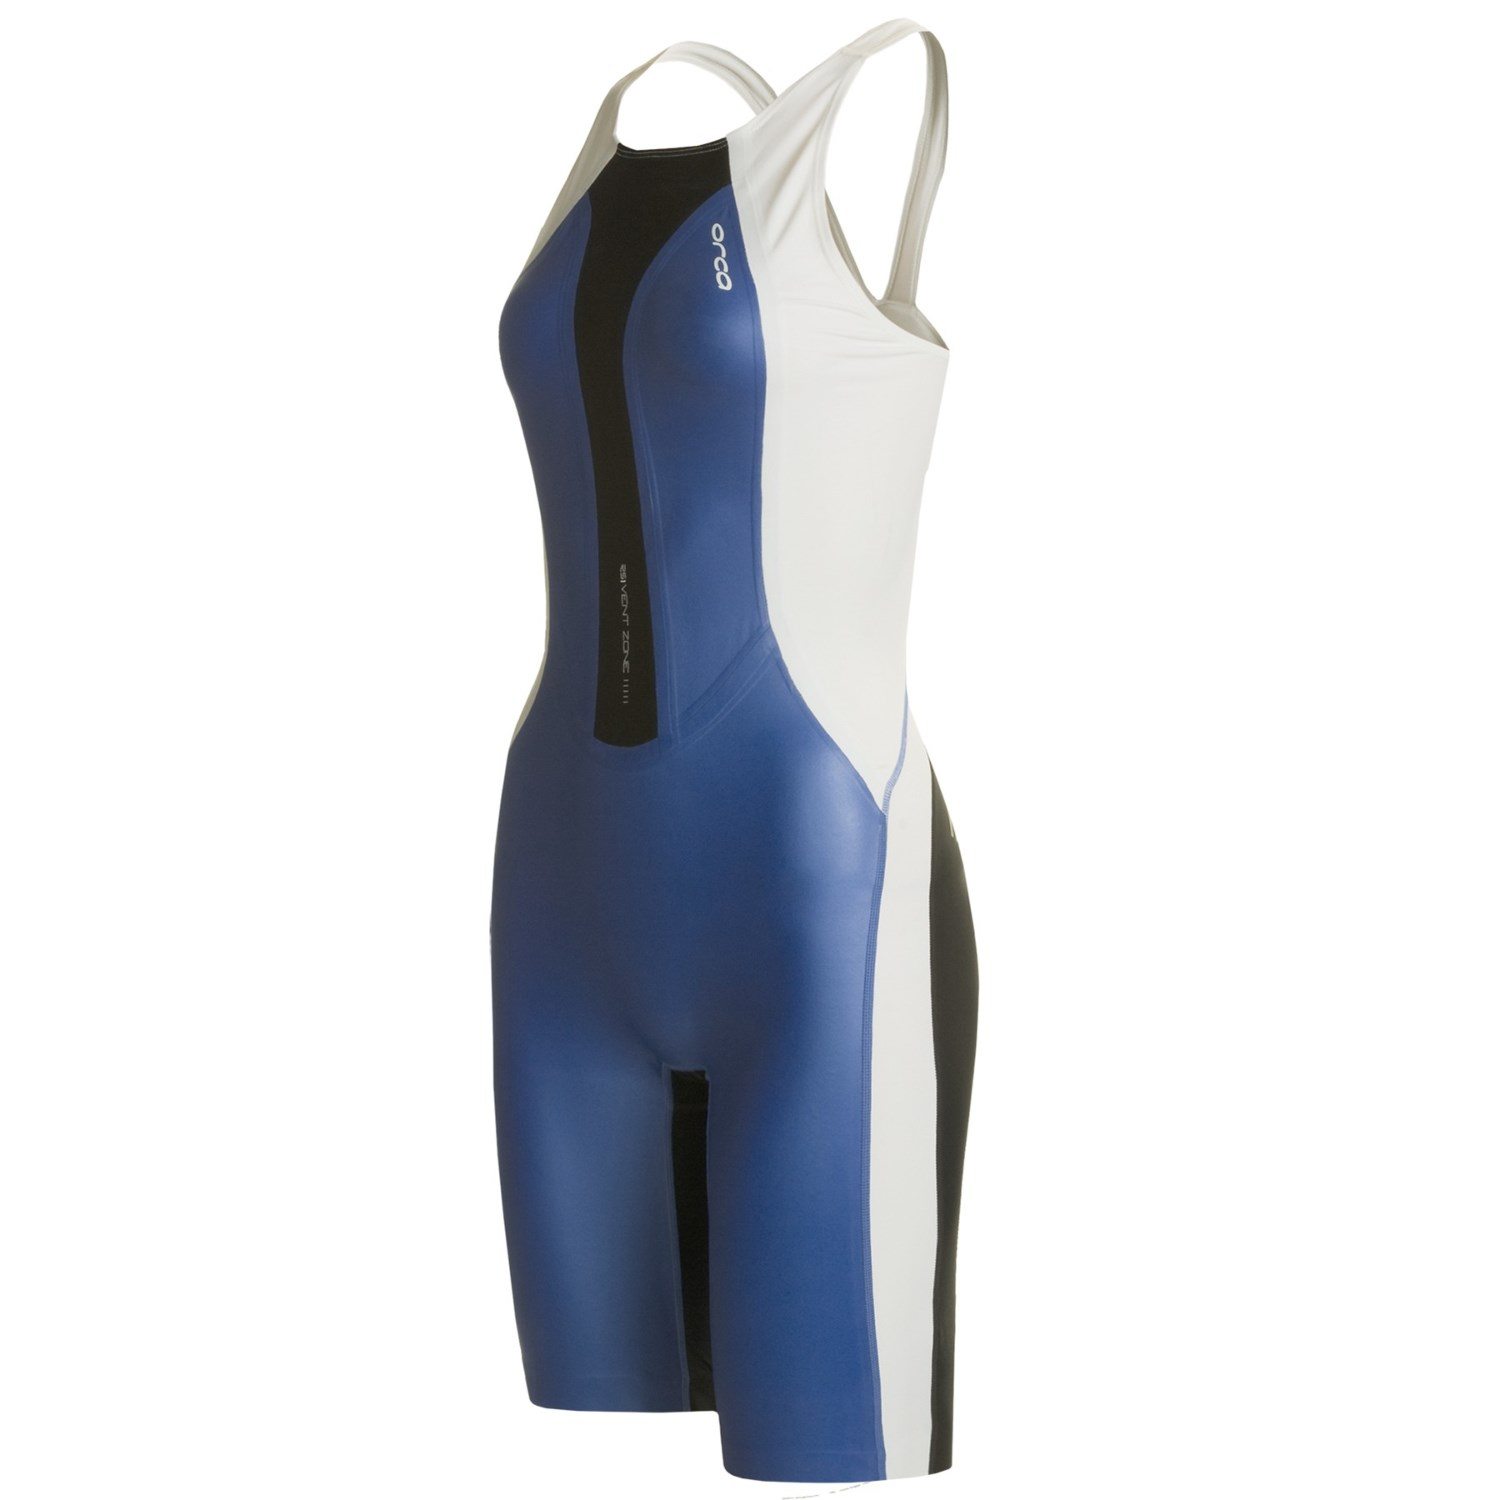 Orca Rs1 Aero Race Tri Suit